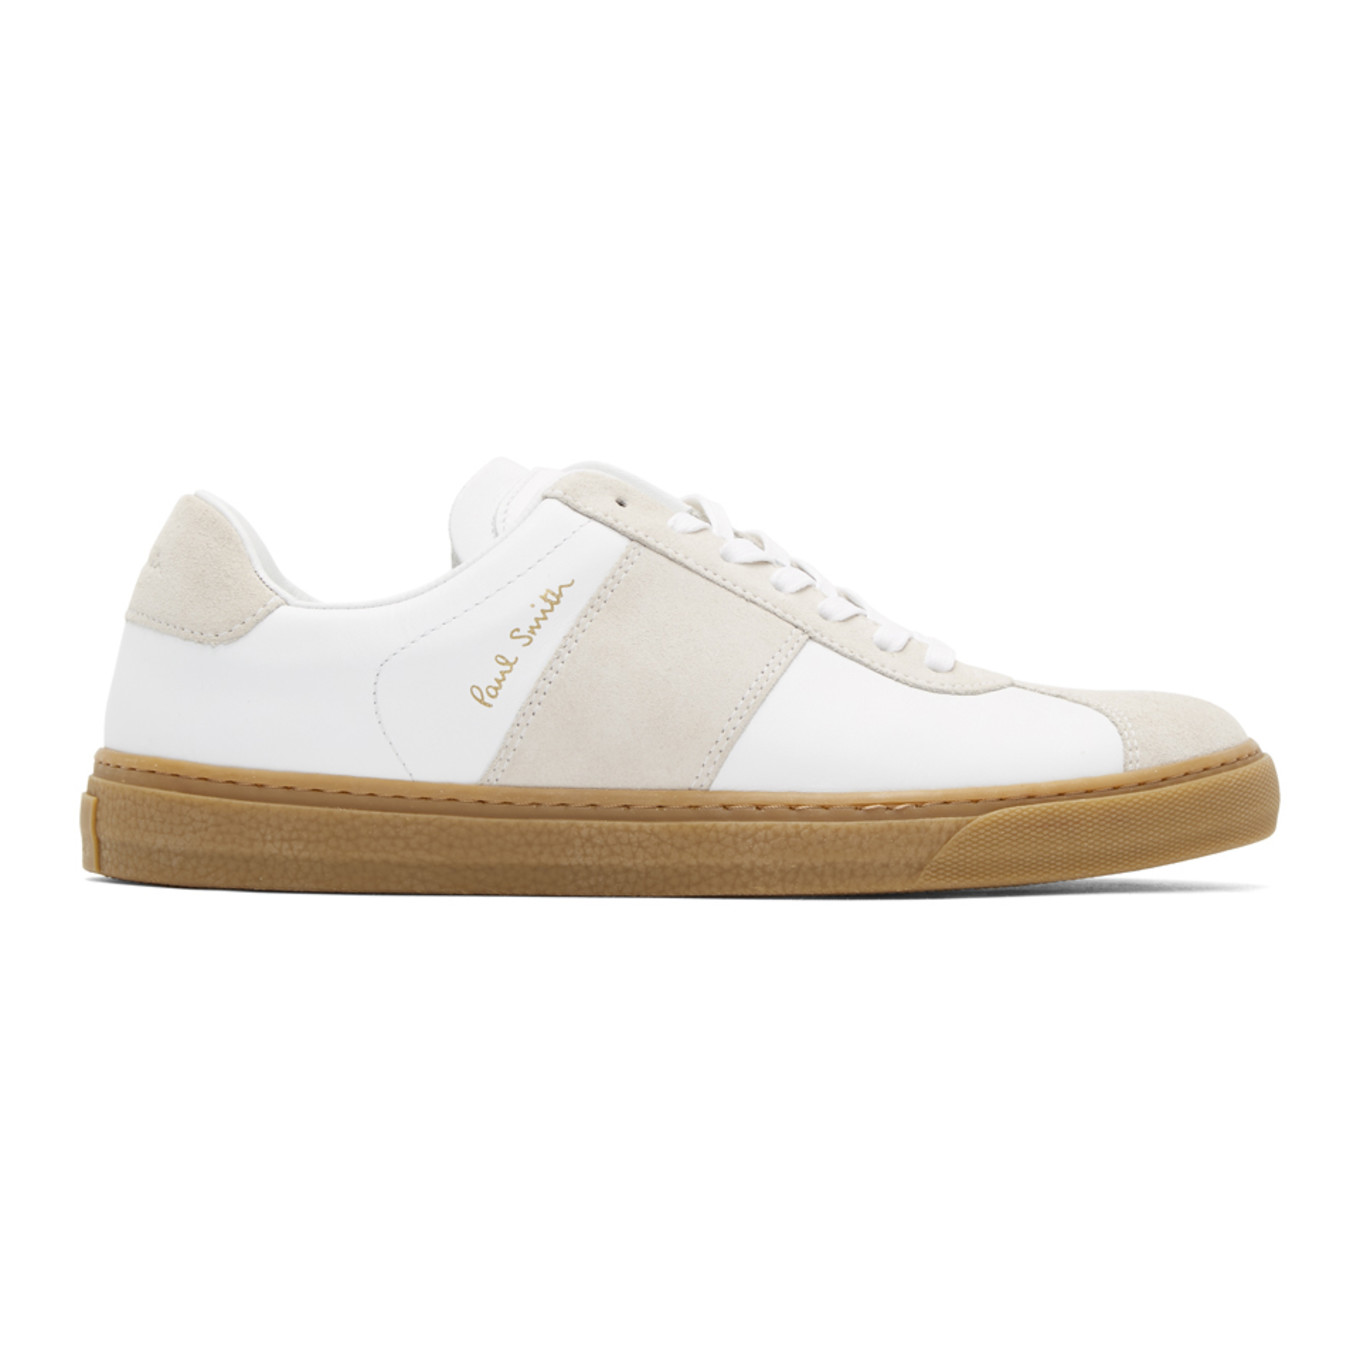 White Levon Sneakers by Paul Smith